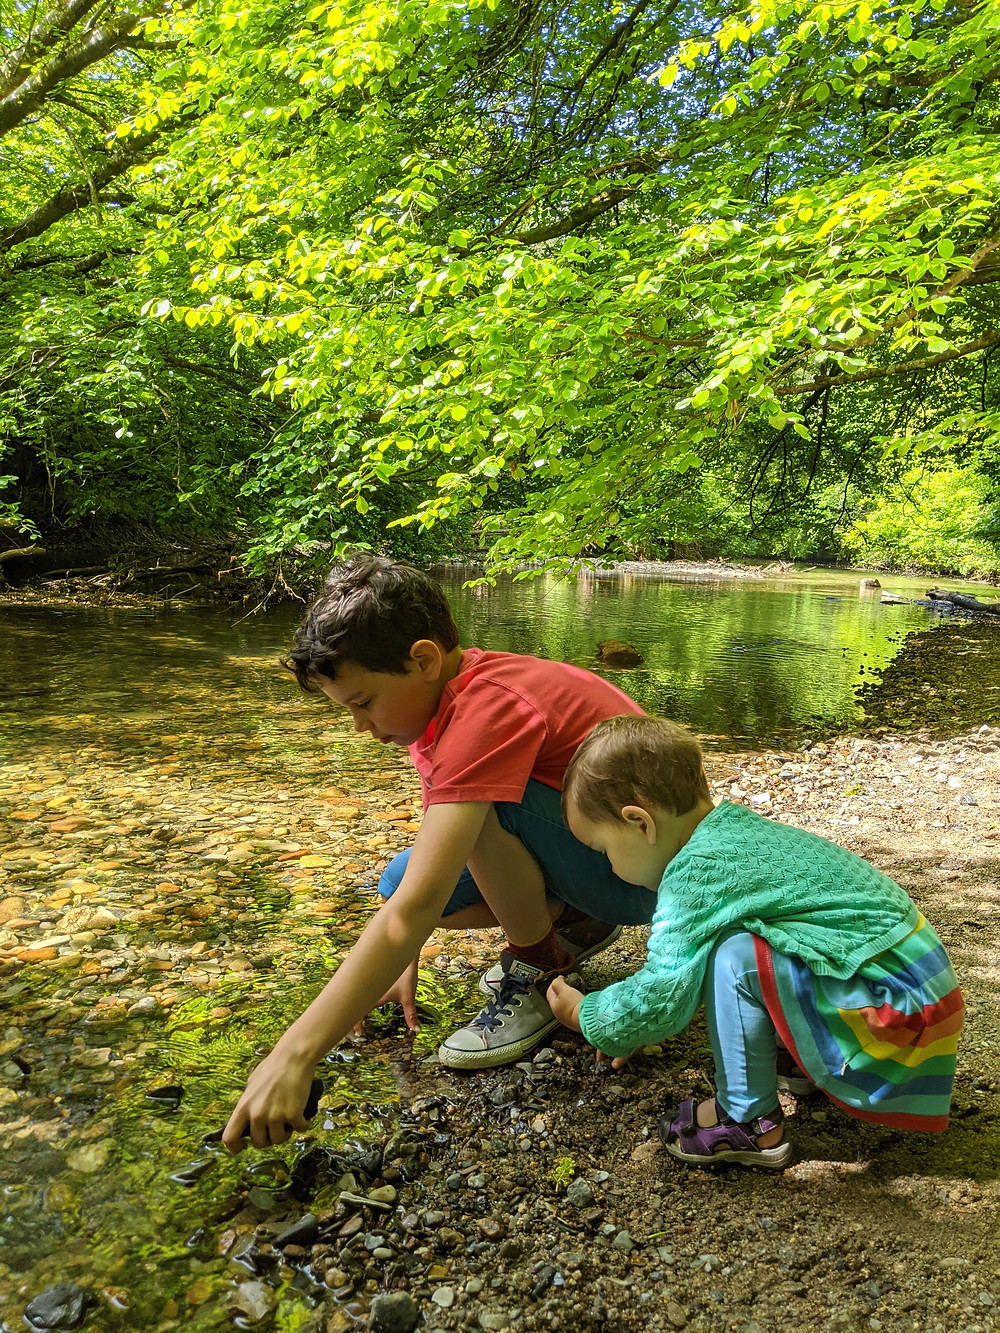 Happy in nature - Kids playing by a river in pre-loved clothing from Animal T-Shirt, Next shorts, Converse trainers, Frugi Organic rainbow tunic & leggings, Karrimor sandals & Marks and Spencers cardigan.